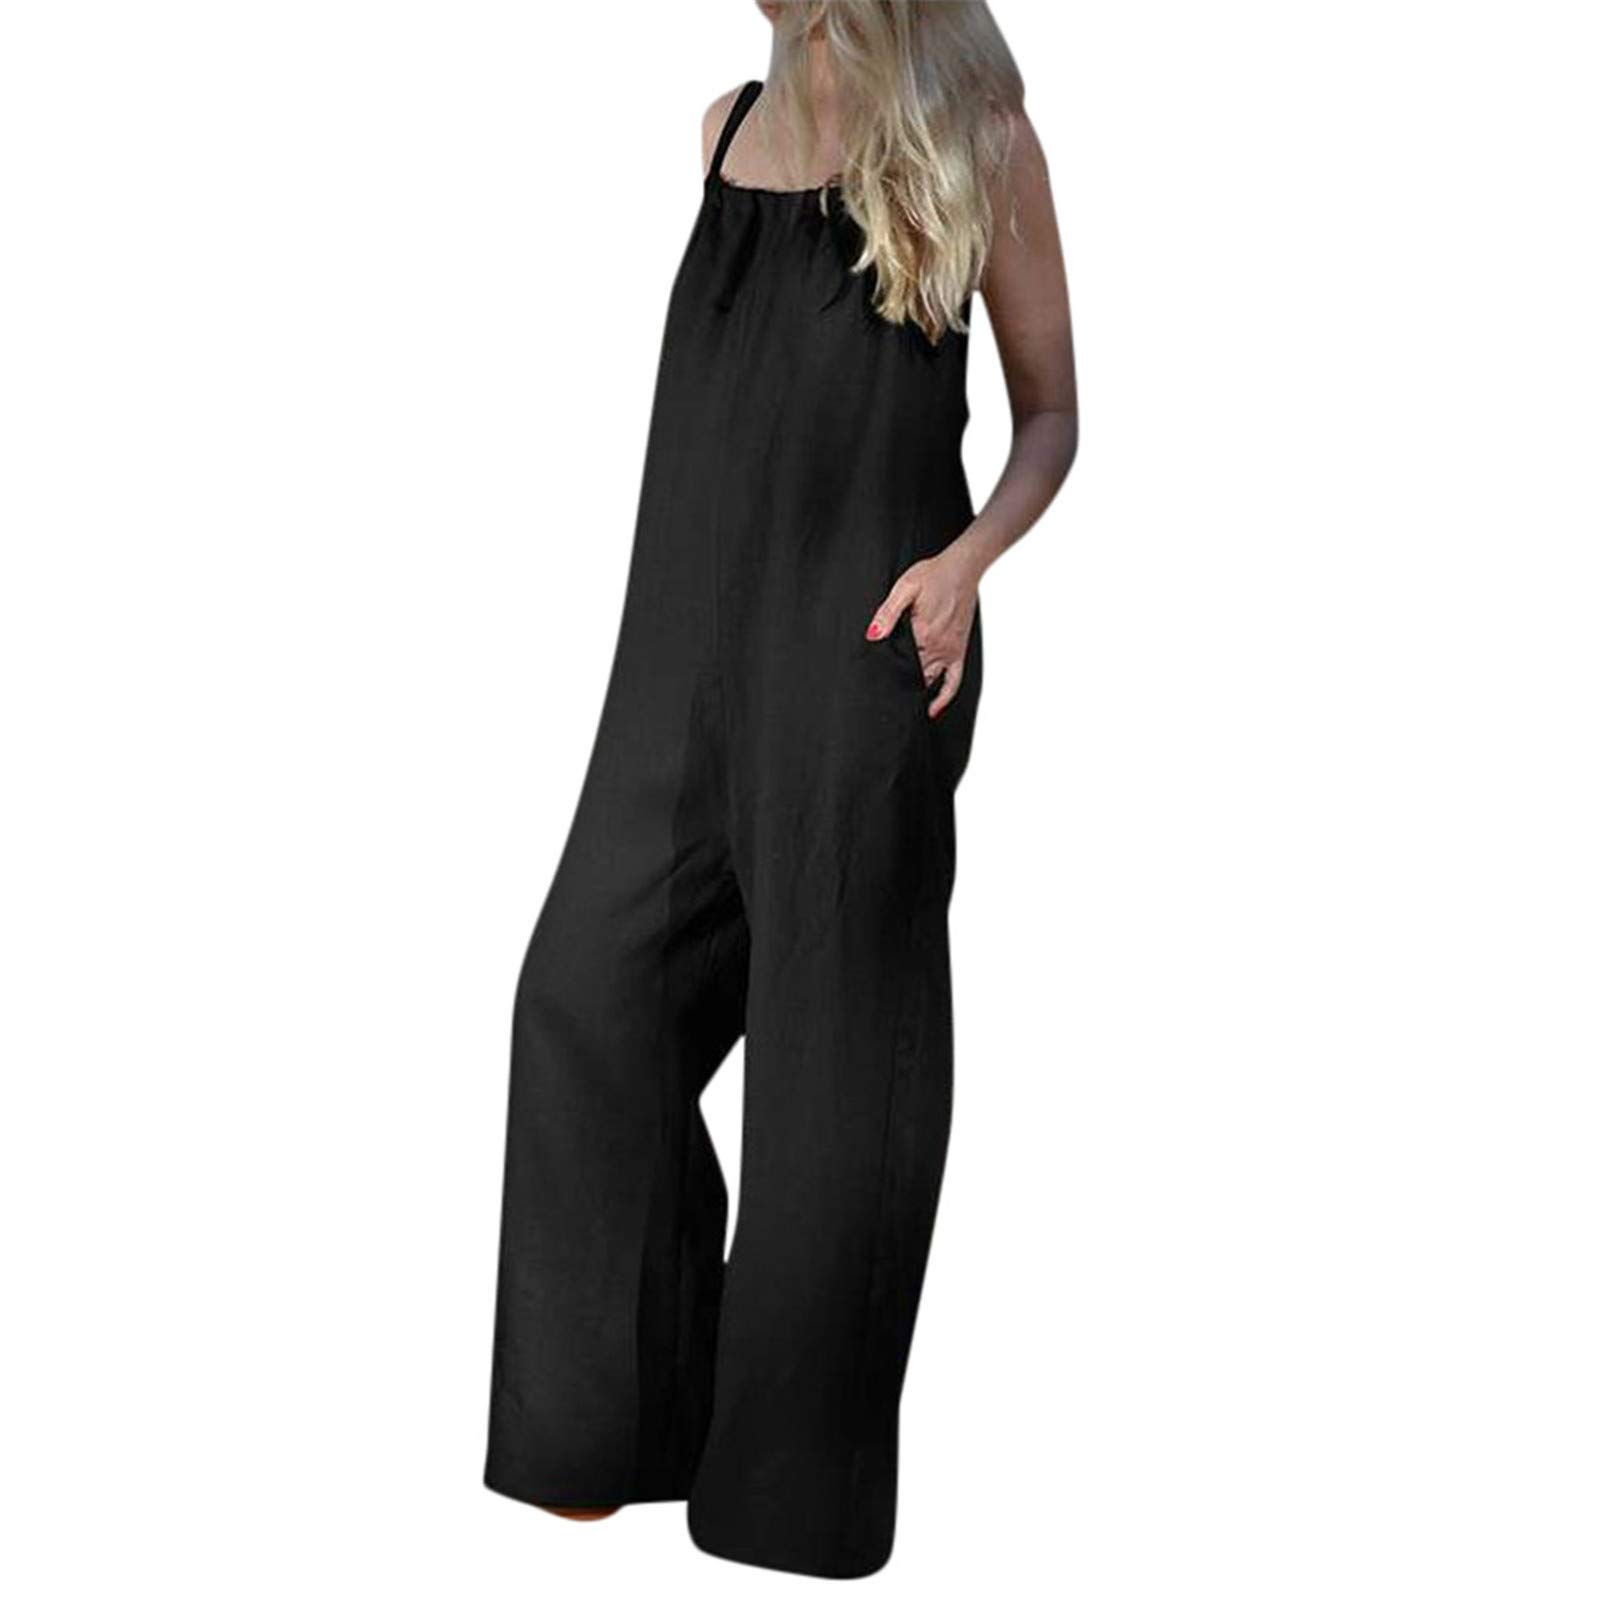 Thenxin Plus Size Jumpsuit for Women Sleeveless Wide Leg Long Pants Romper with Pockets (Black,XL)